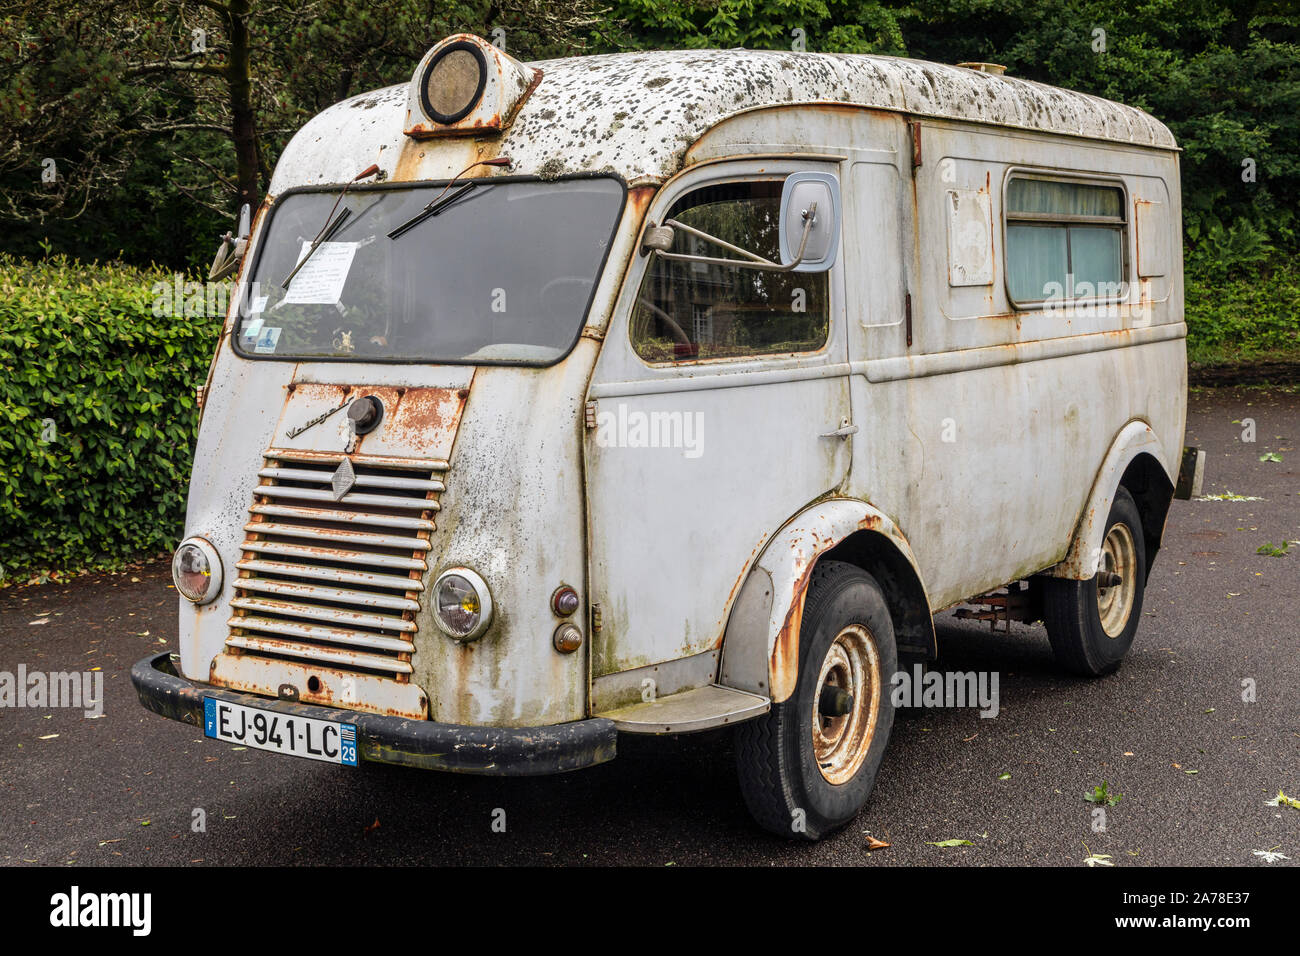 Old Renault High Resolution Stock Photography And Images Alamy